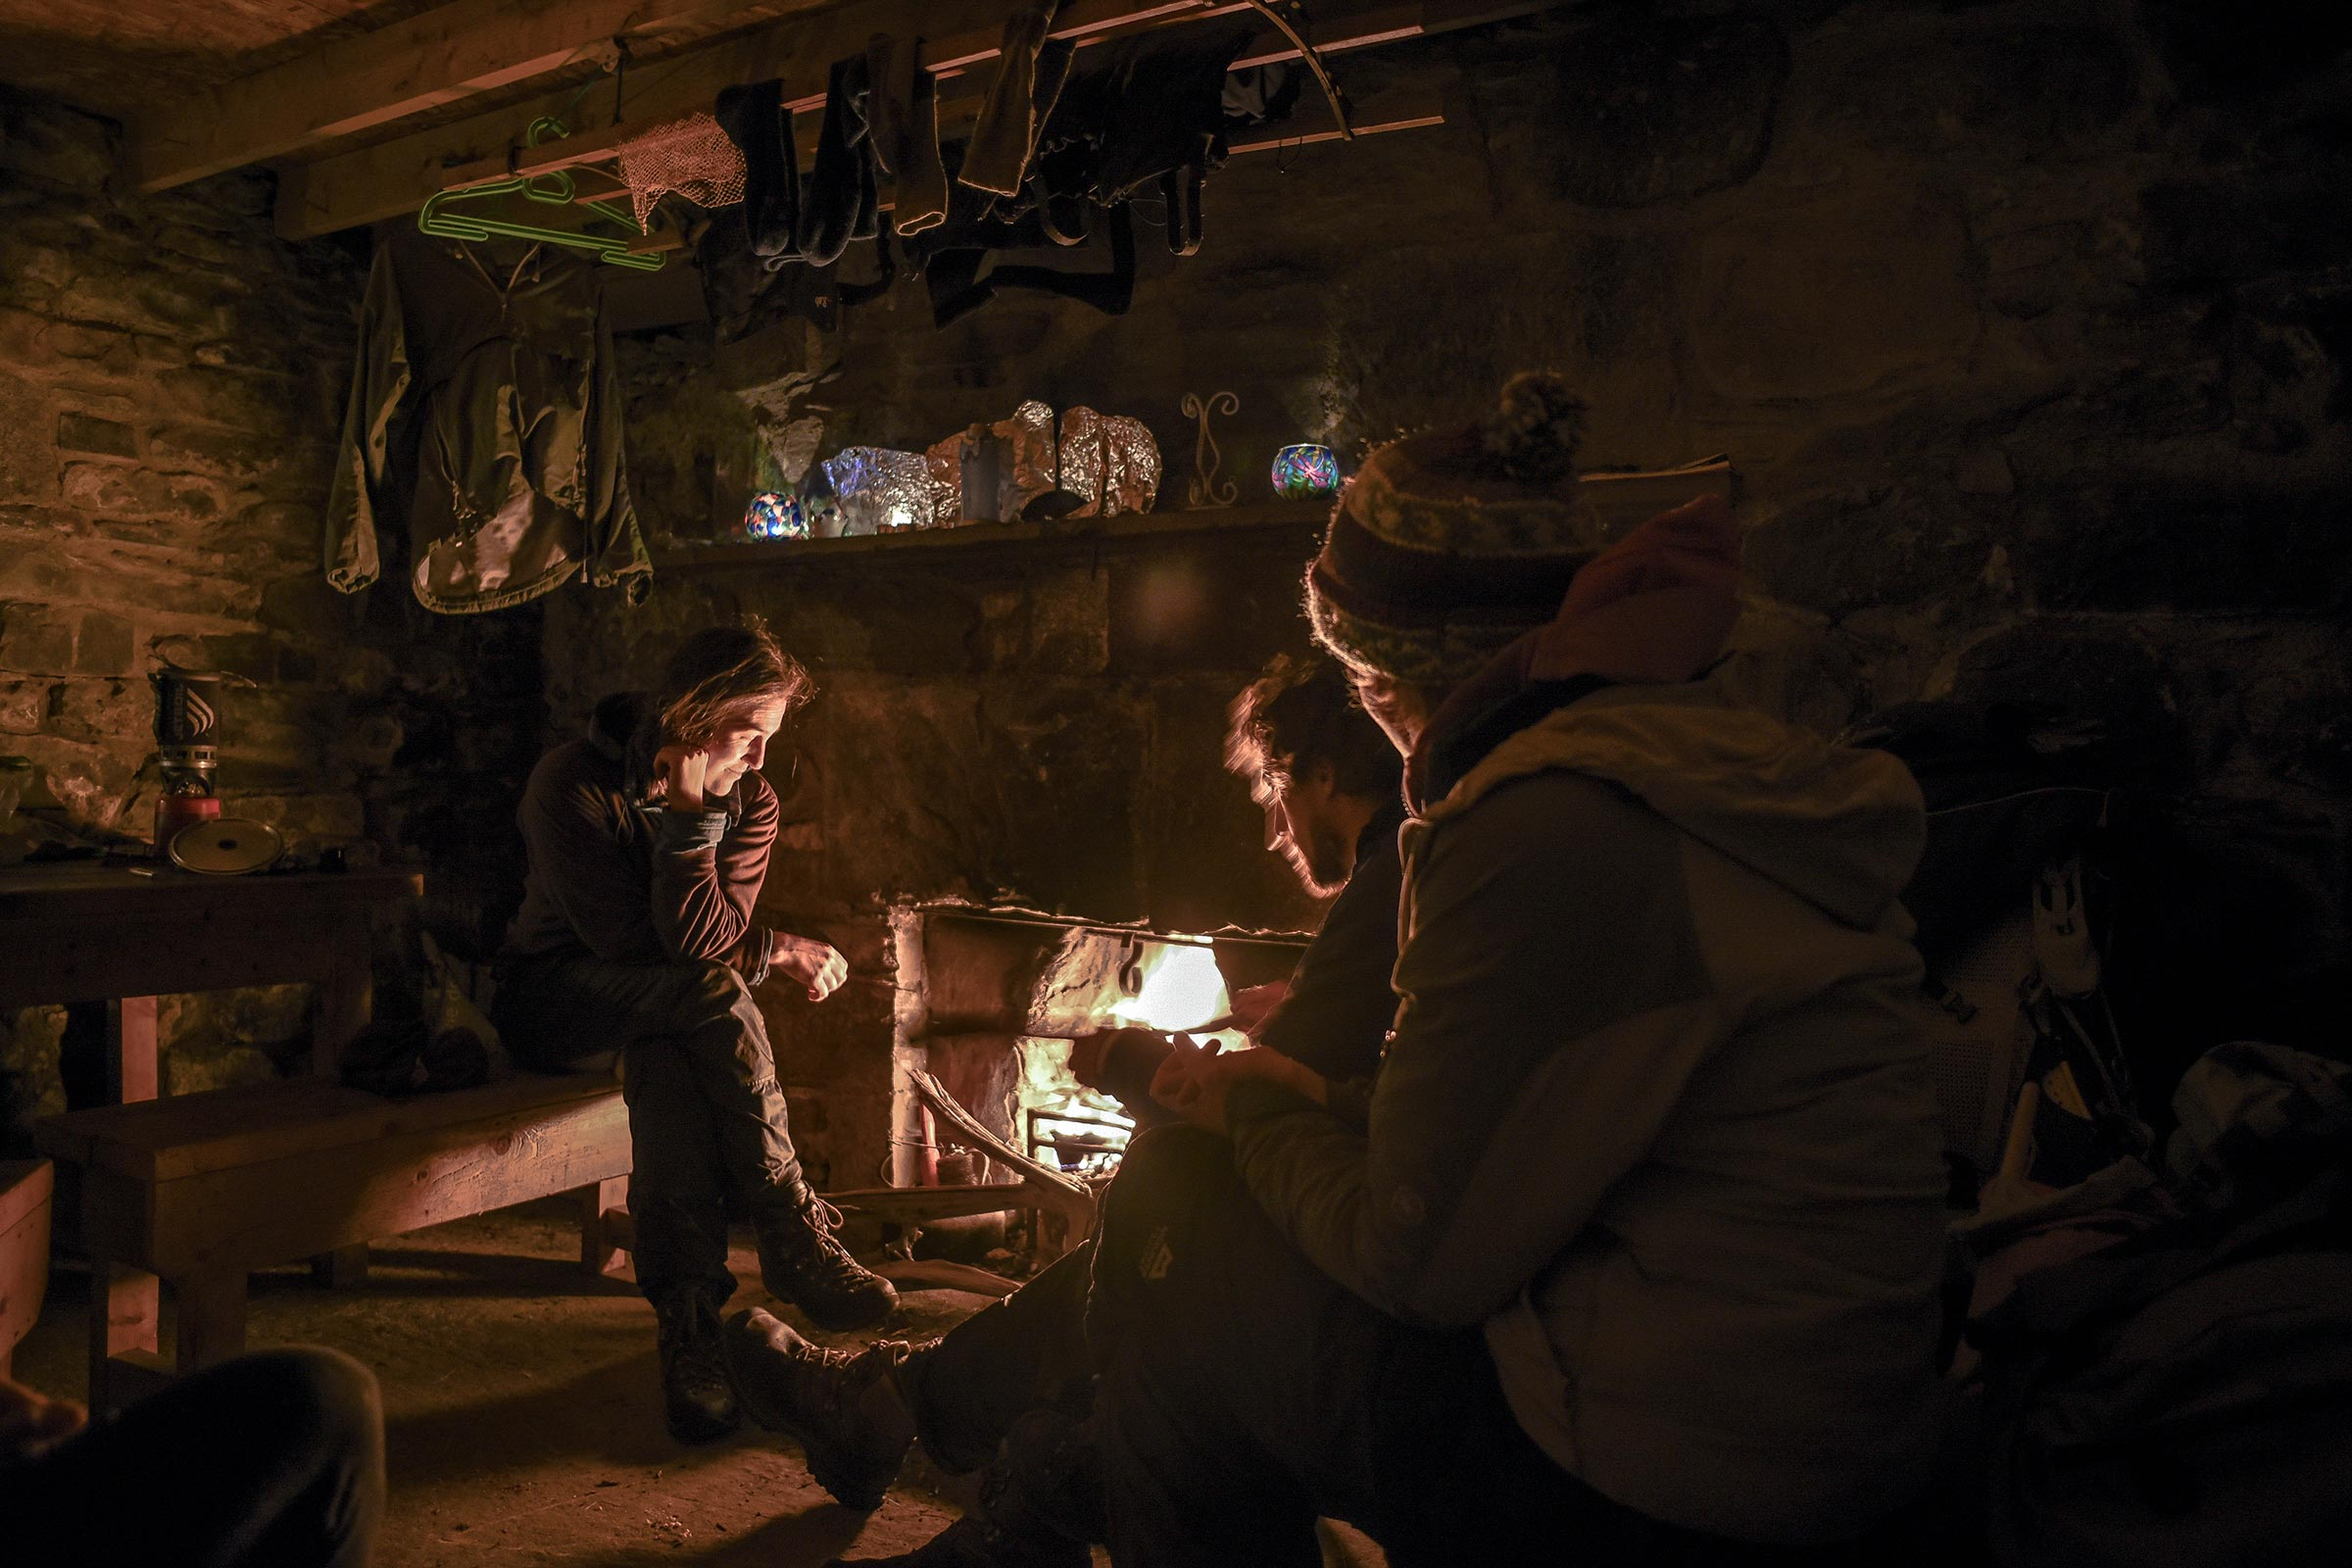 Hiltner met other adventurers on his journey, including new friends Francis, Tom and Lynn at a bothy in the Scottish Highlands.